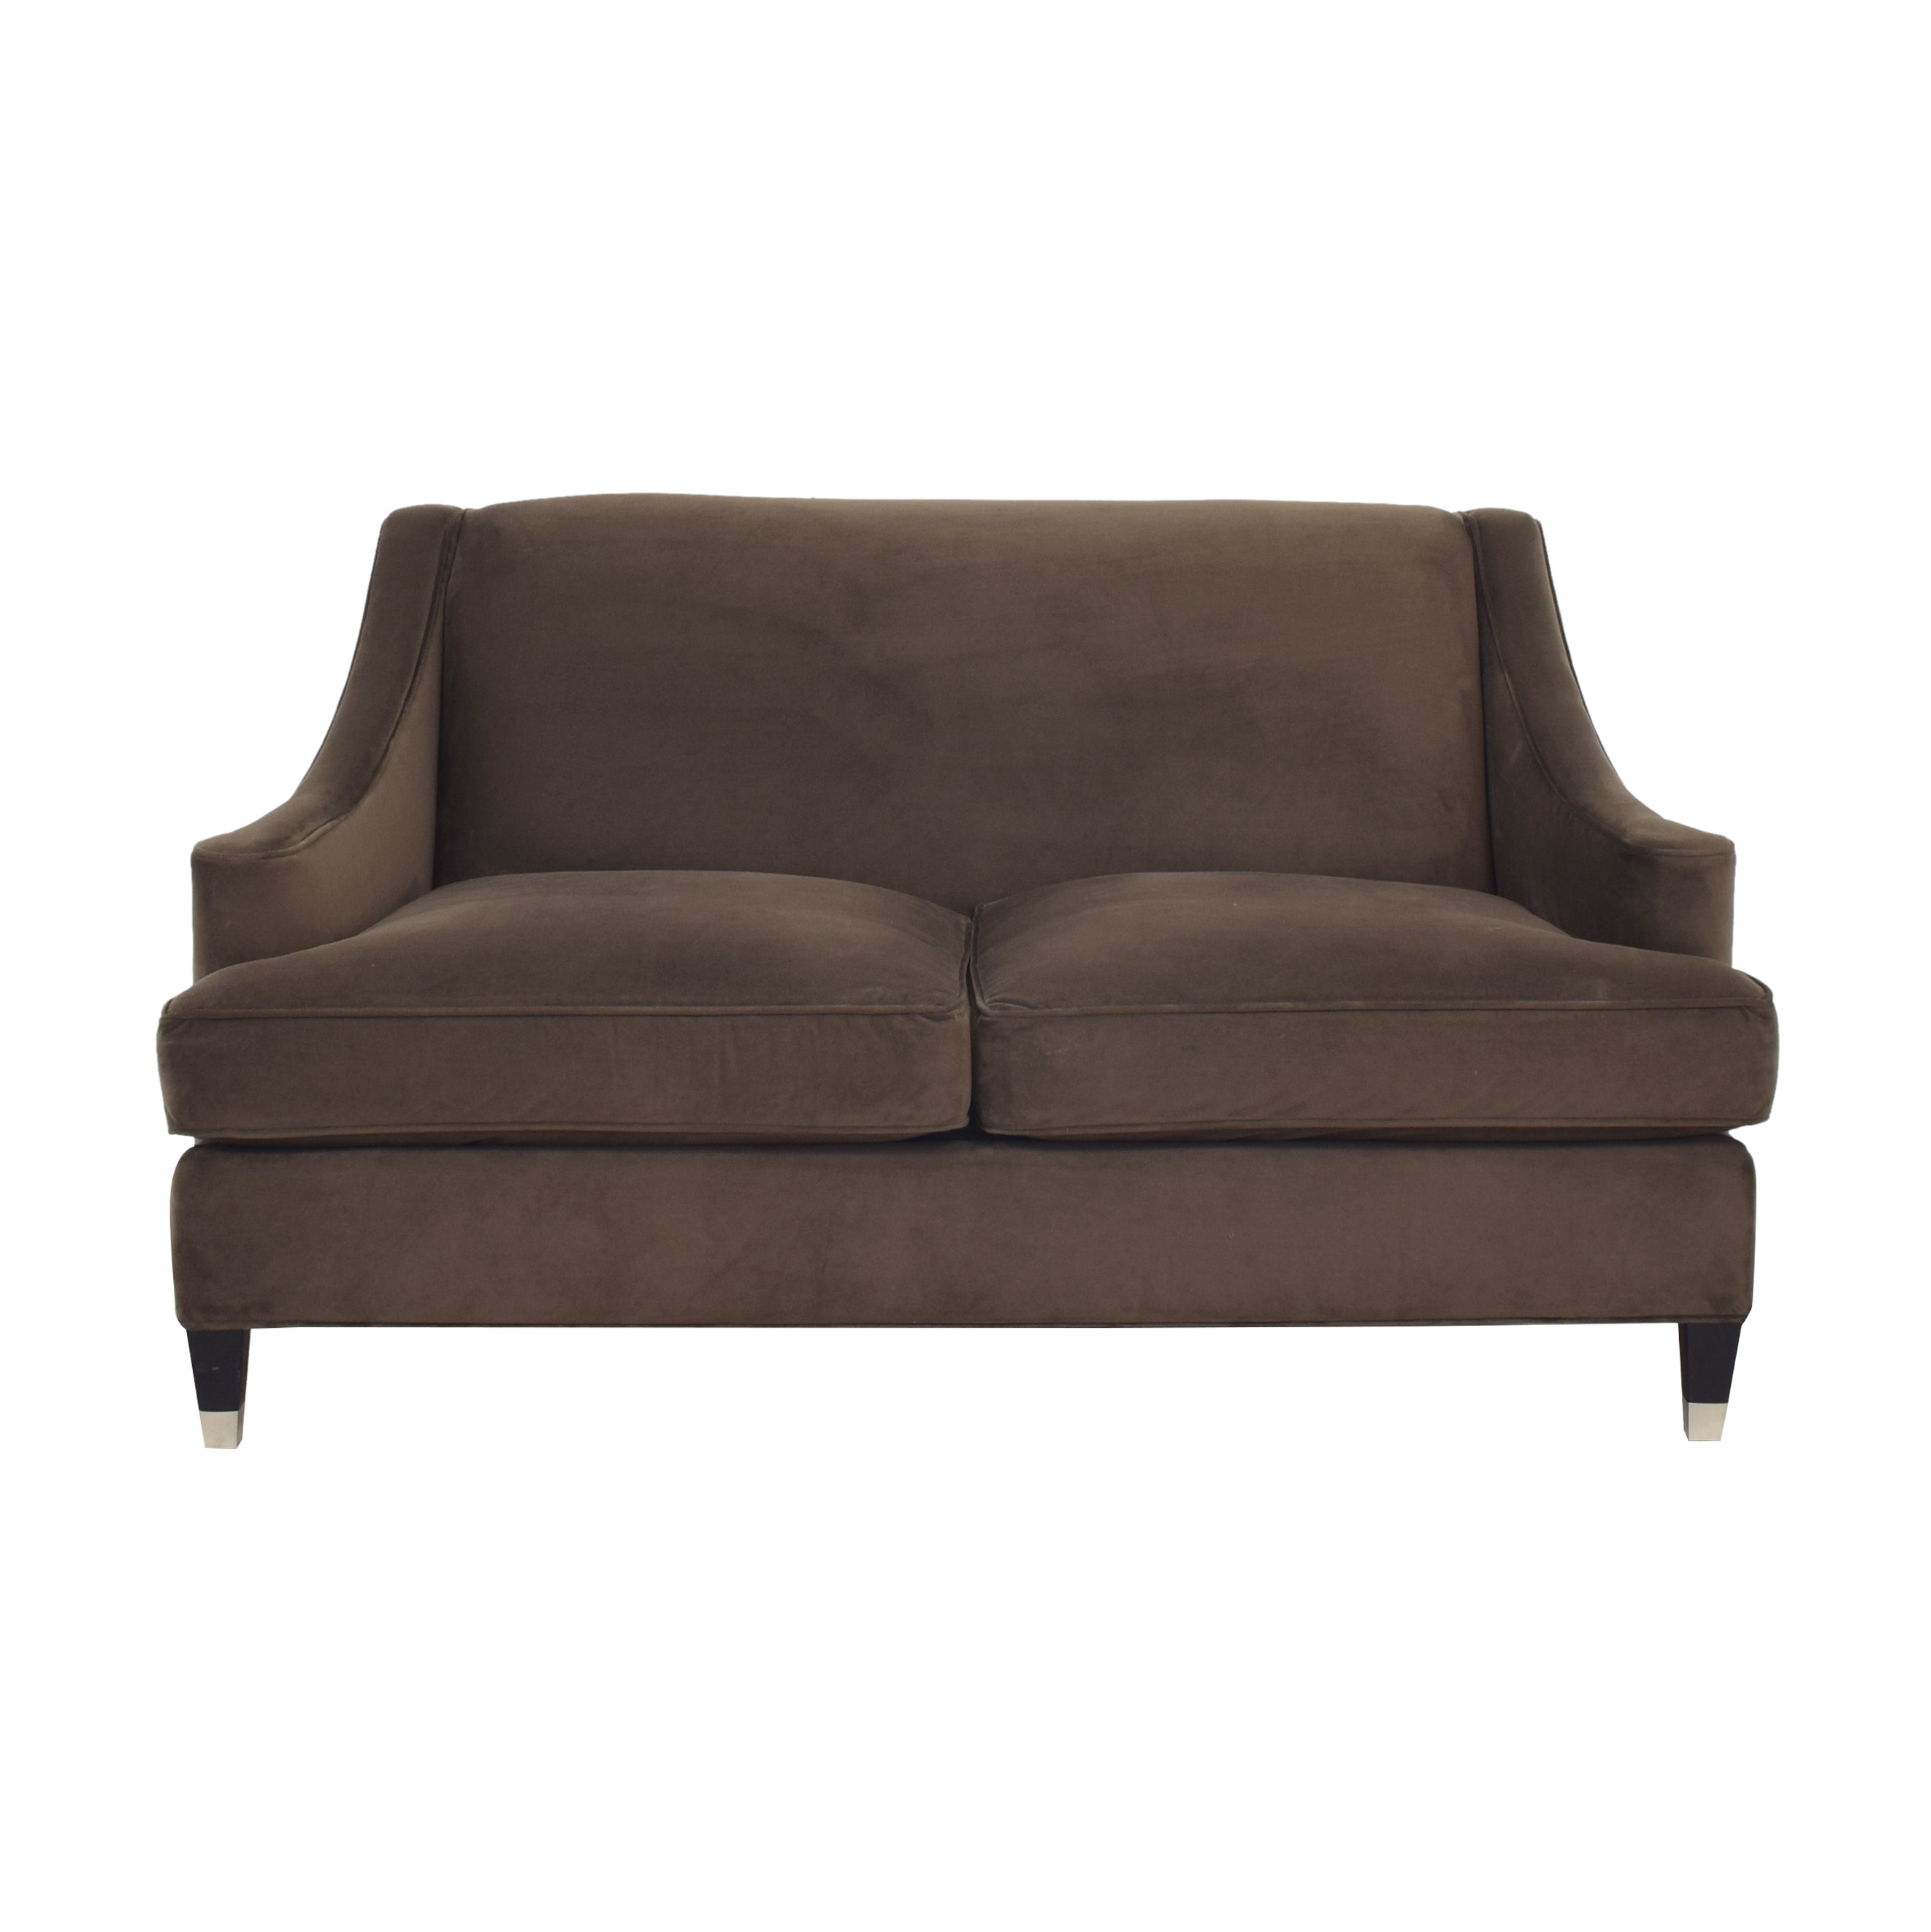 Room & Board Room & Board Loring Walnut Loveseat Loveseats